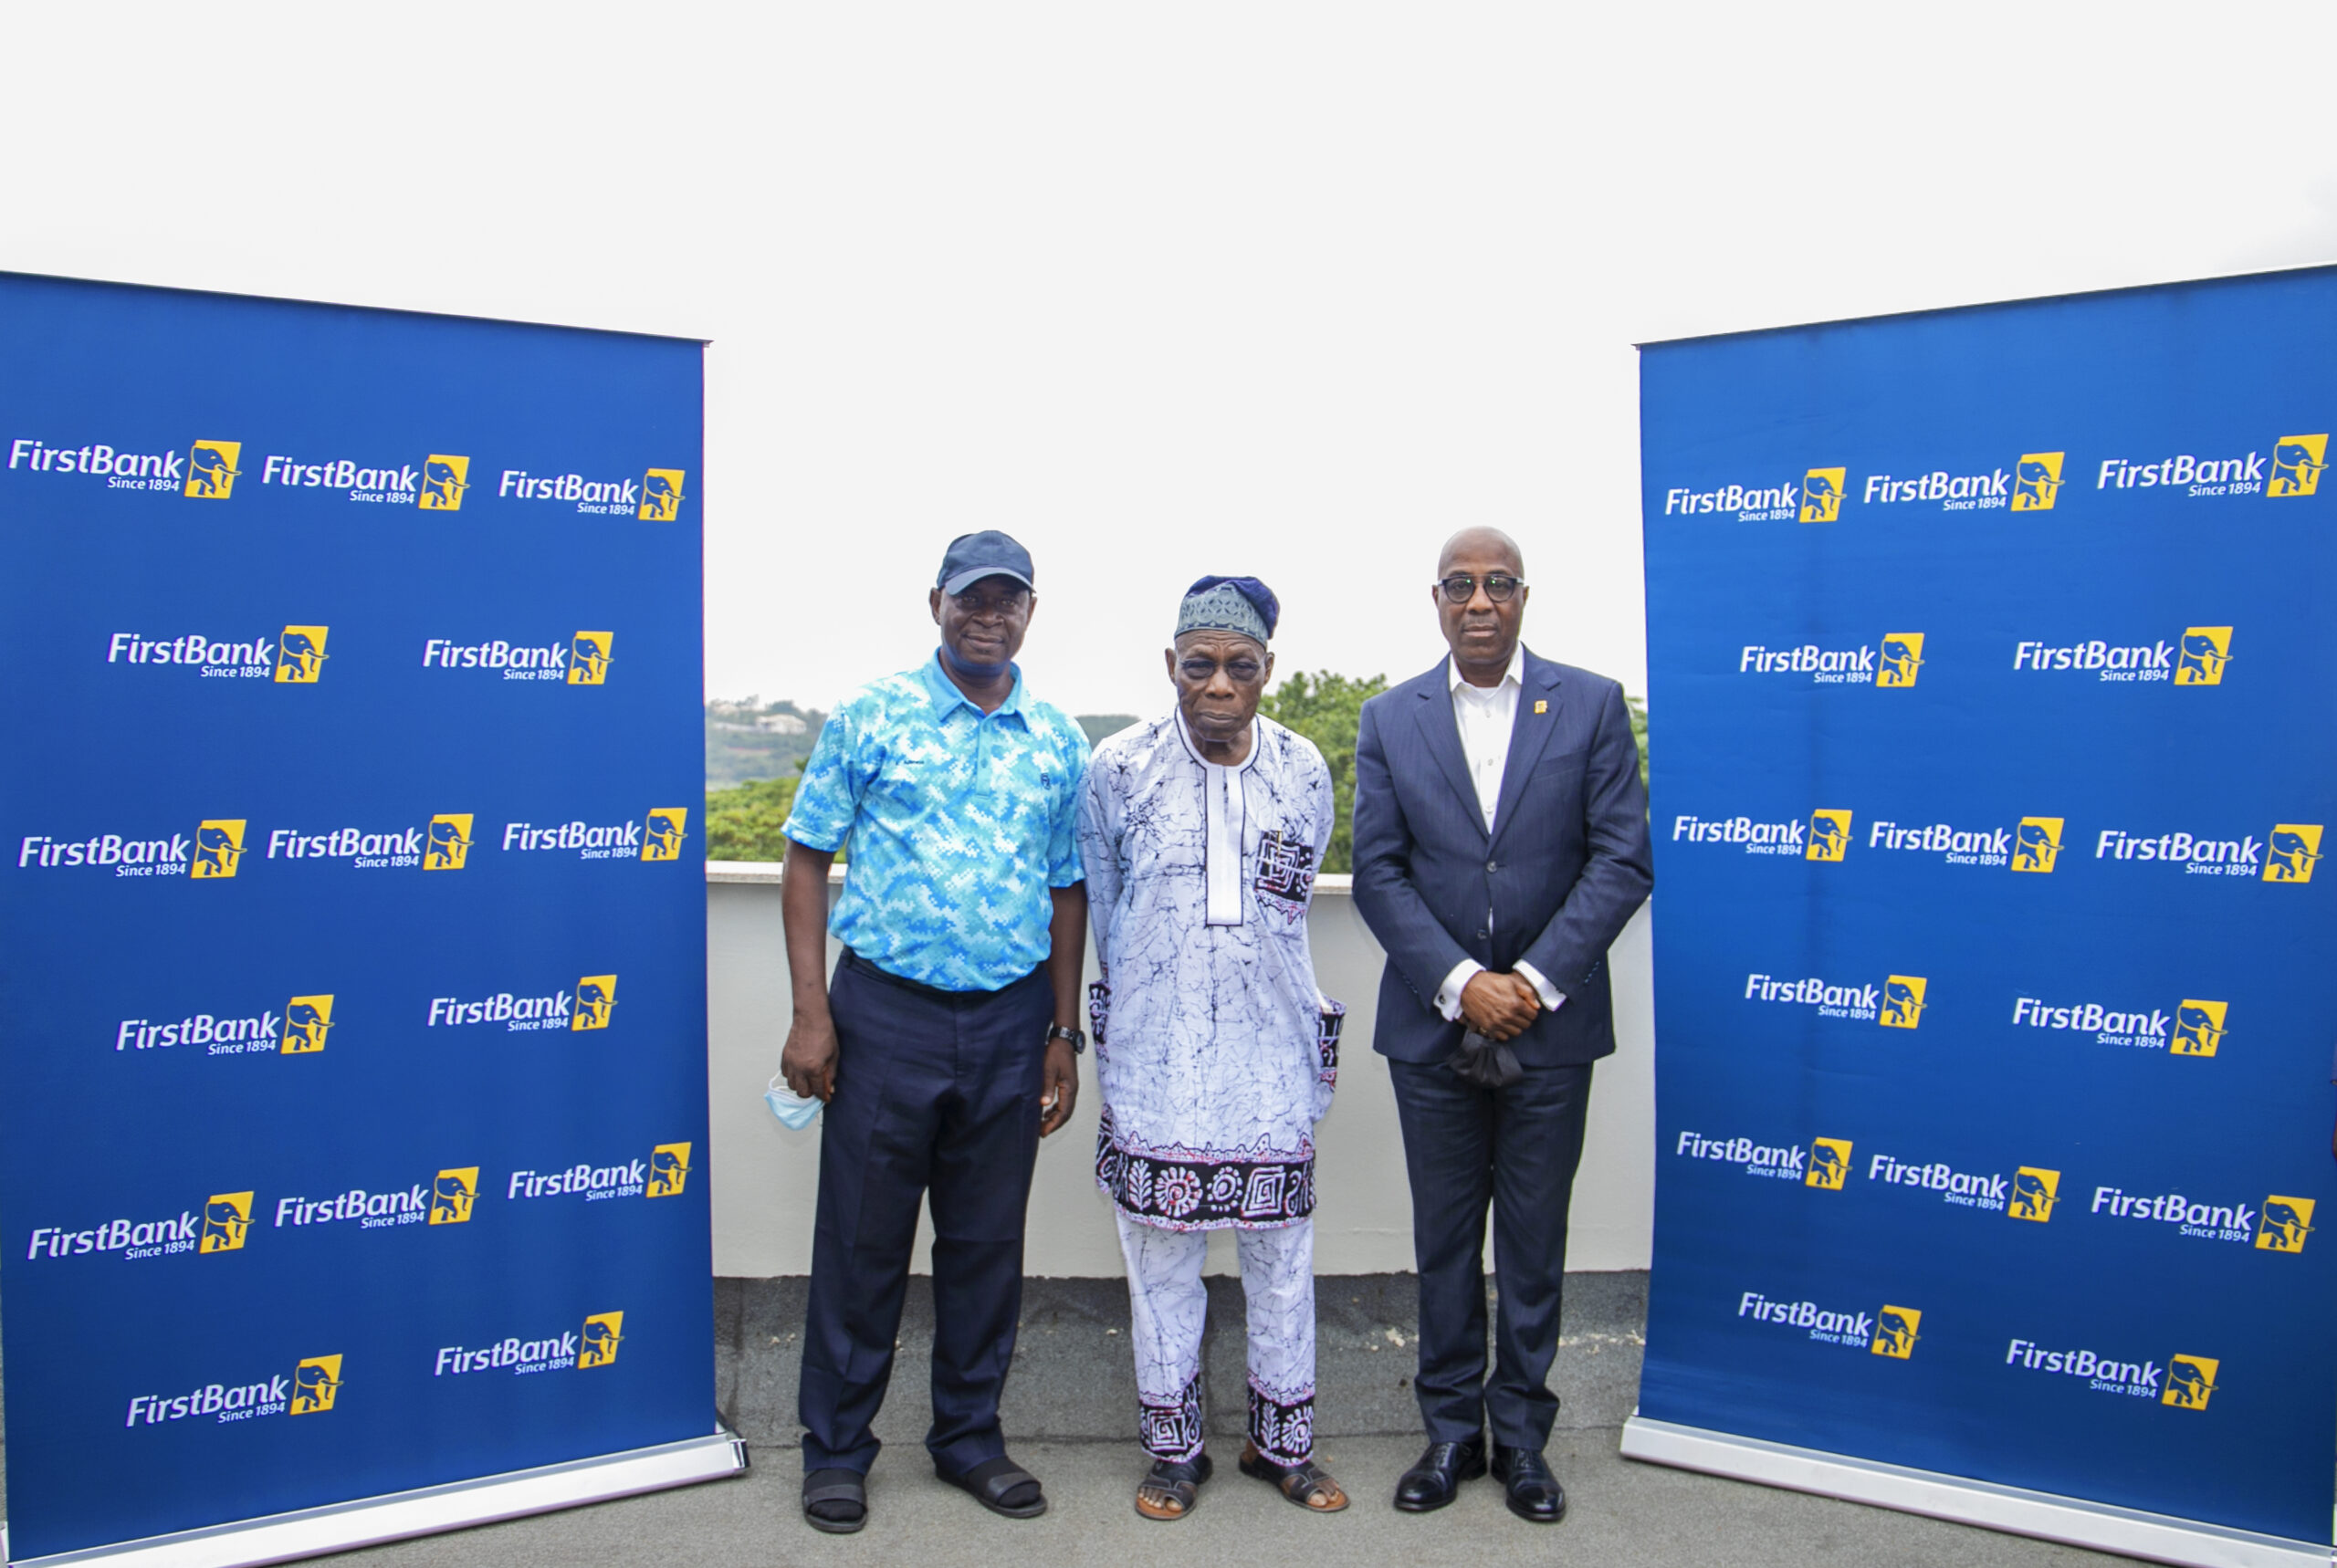 FIRSTBANK SPONSORS THE 5TH EDITION OF THE CHIEF OLUSEGUN OBASANJO GOLF TOURNAMENT